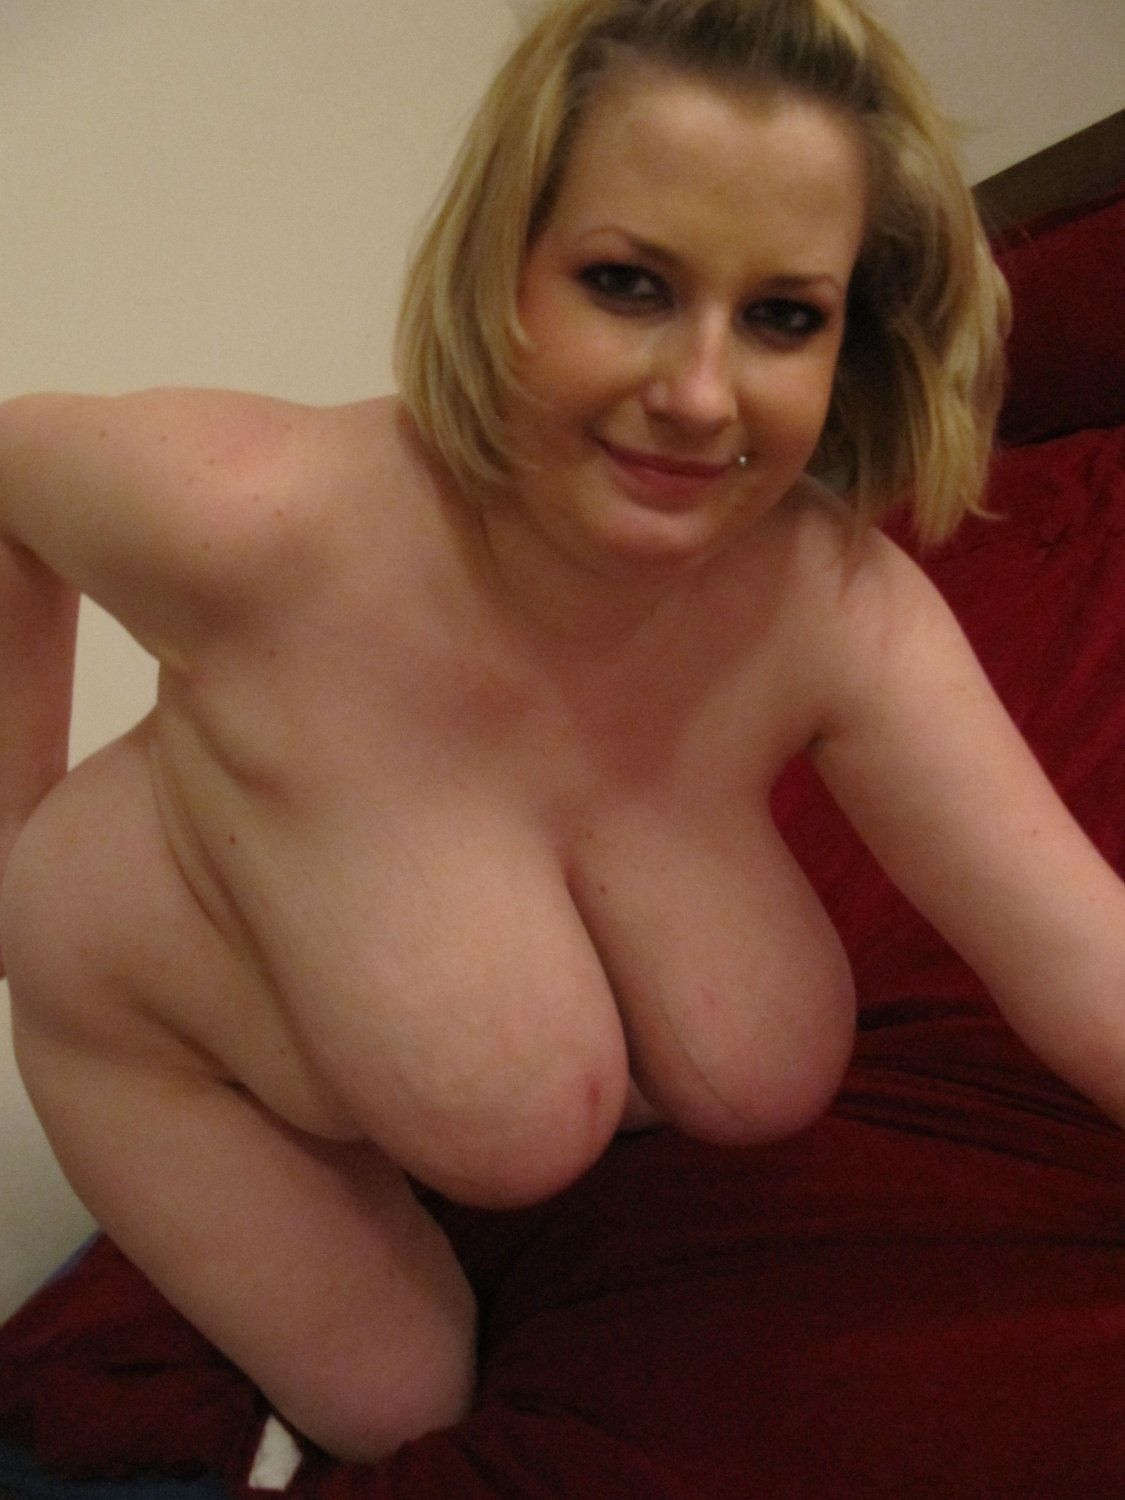 Large breasted nude pornstars